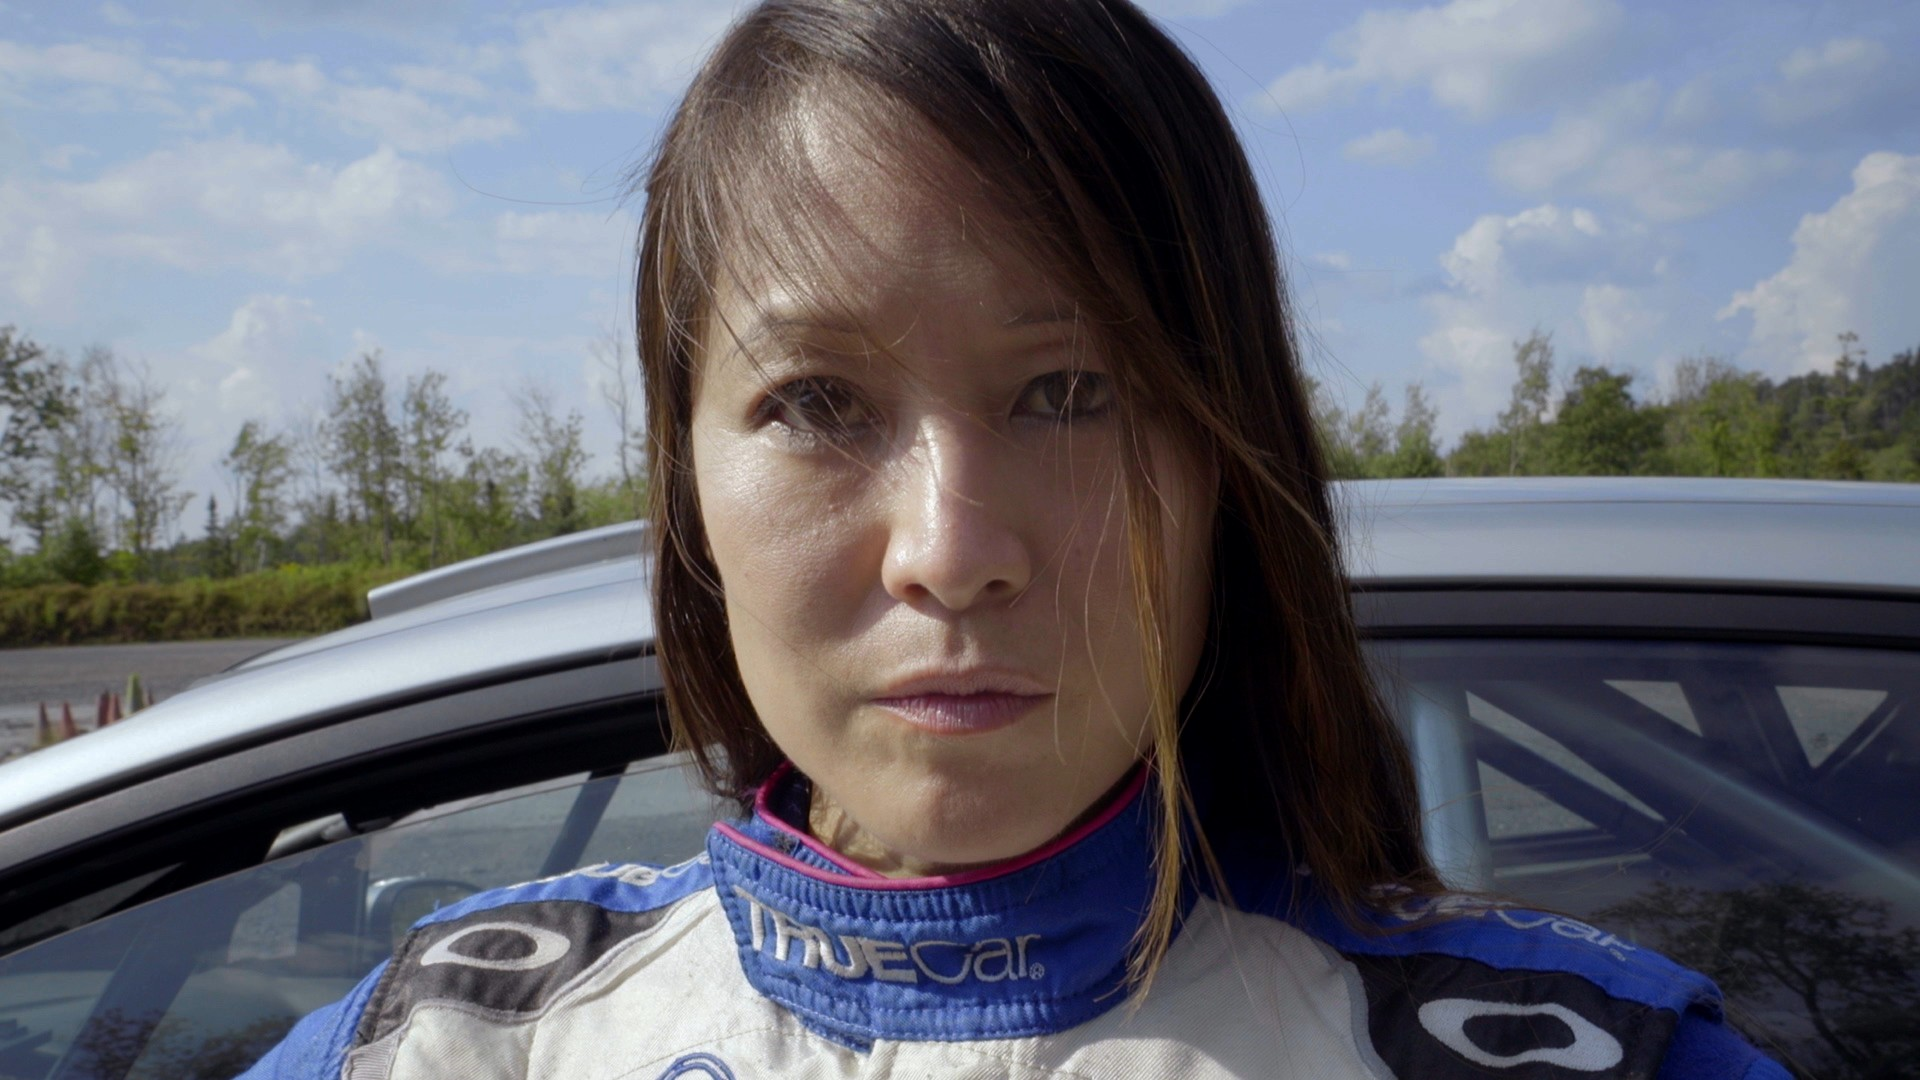 Meet One of America's Only Female Rally Race Car Drivers